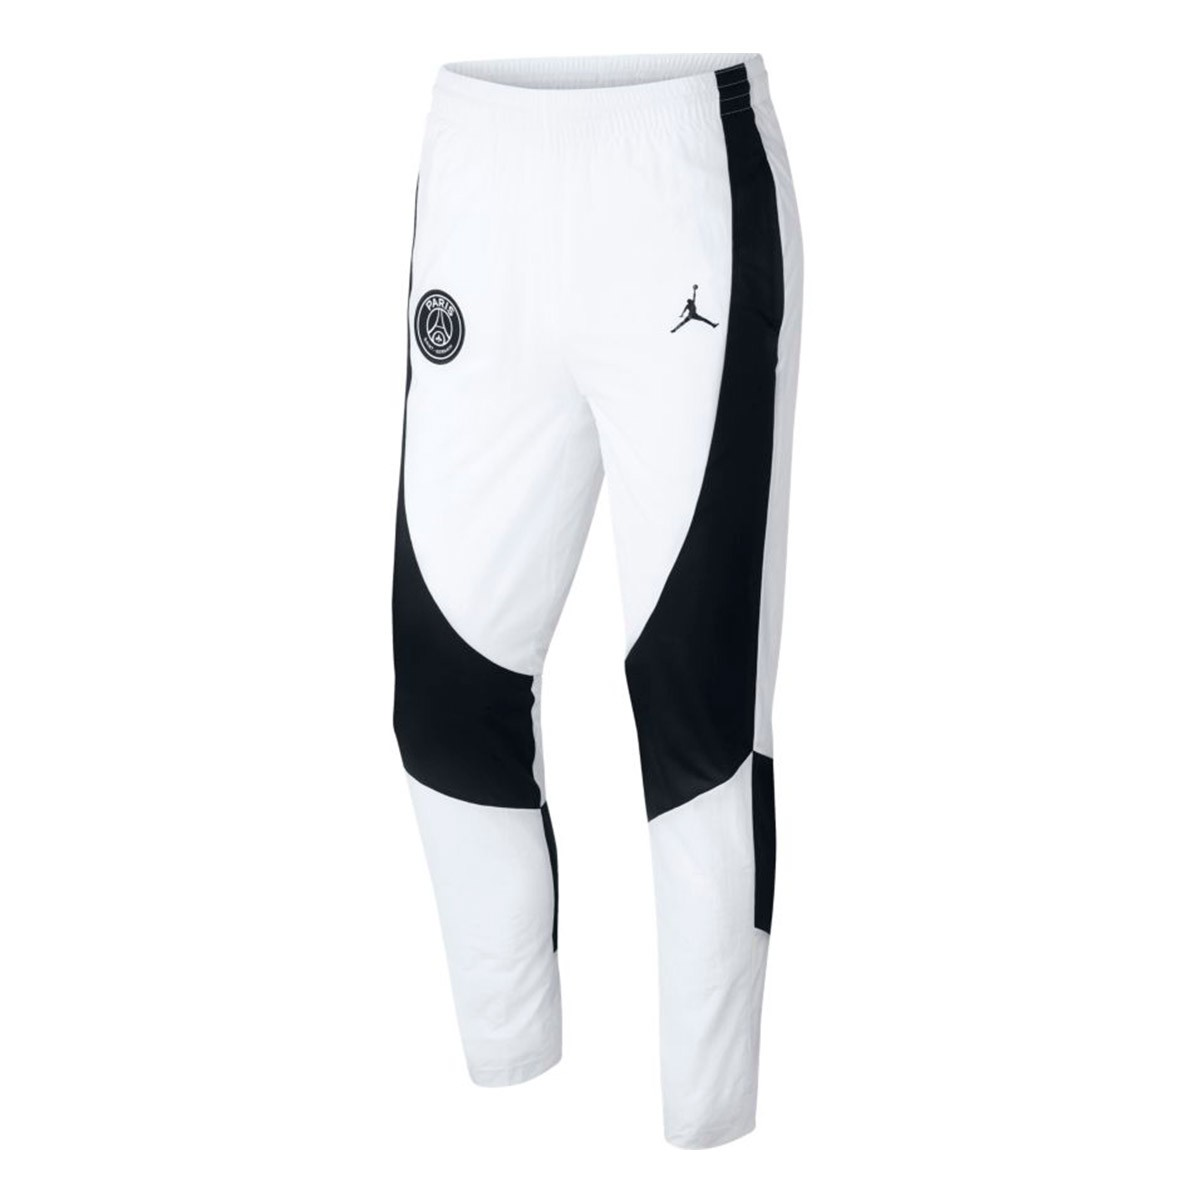 buy online ea525 8bcff Nike Jordan x PSG AJ1 Long pants. White-Black ...